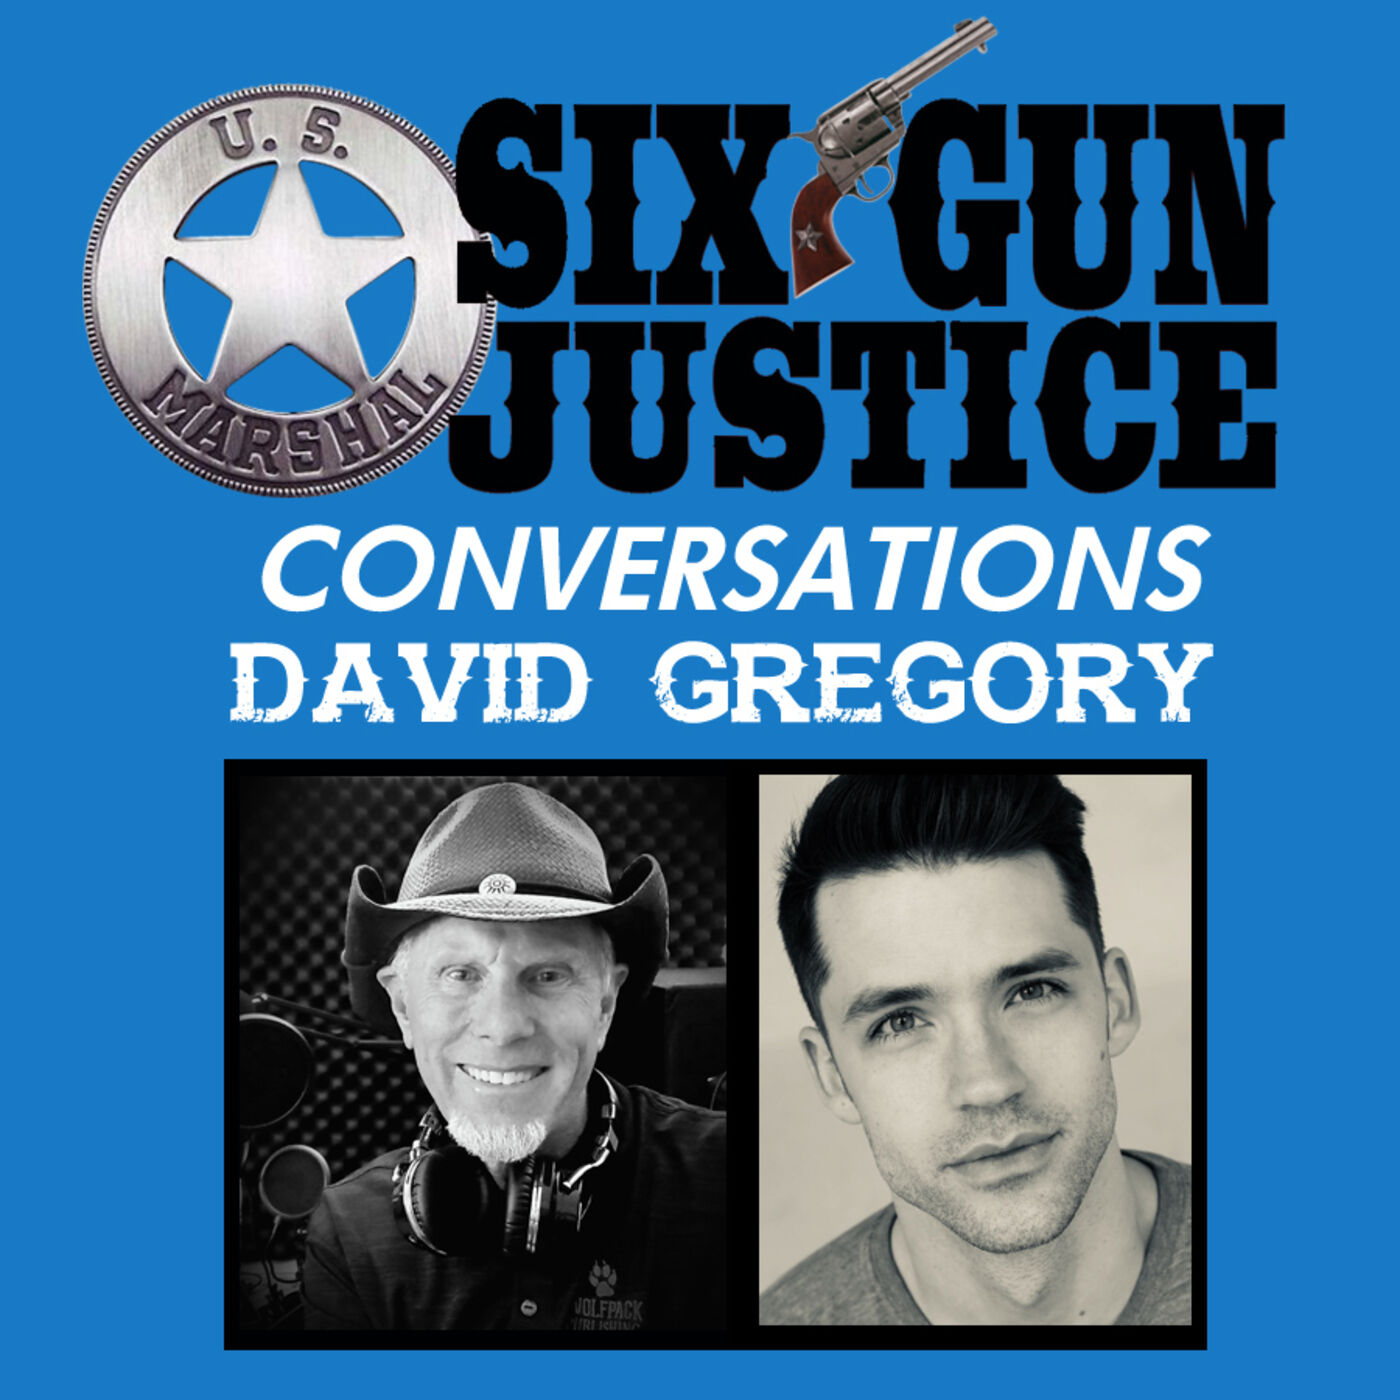 SIX-GUN JUSTICE CONVERSATIONS—DAVID GREGORY